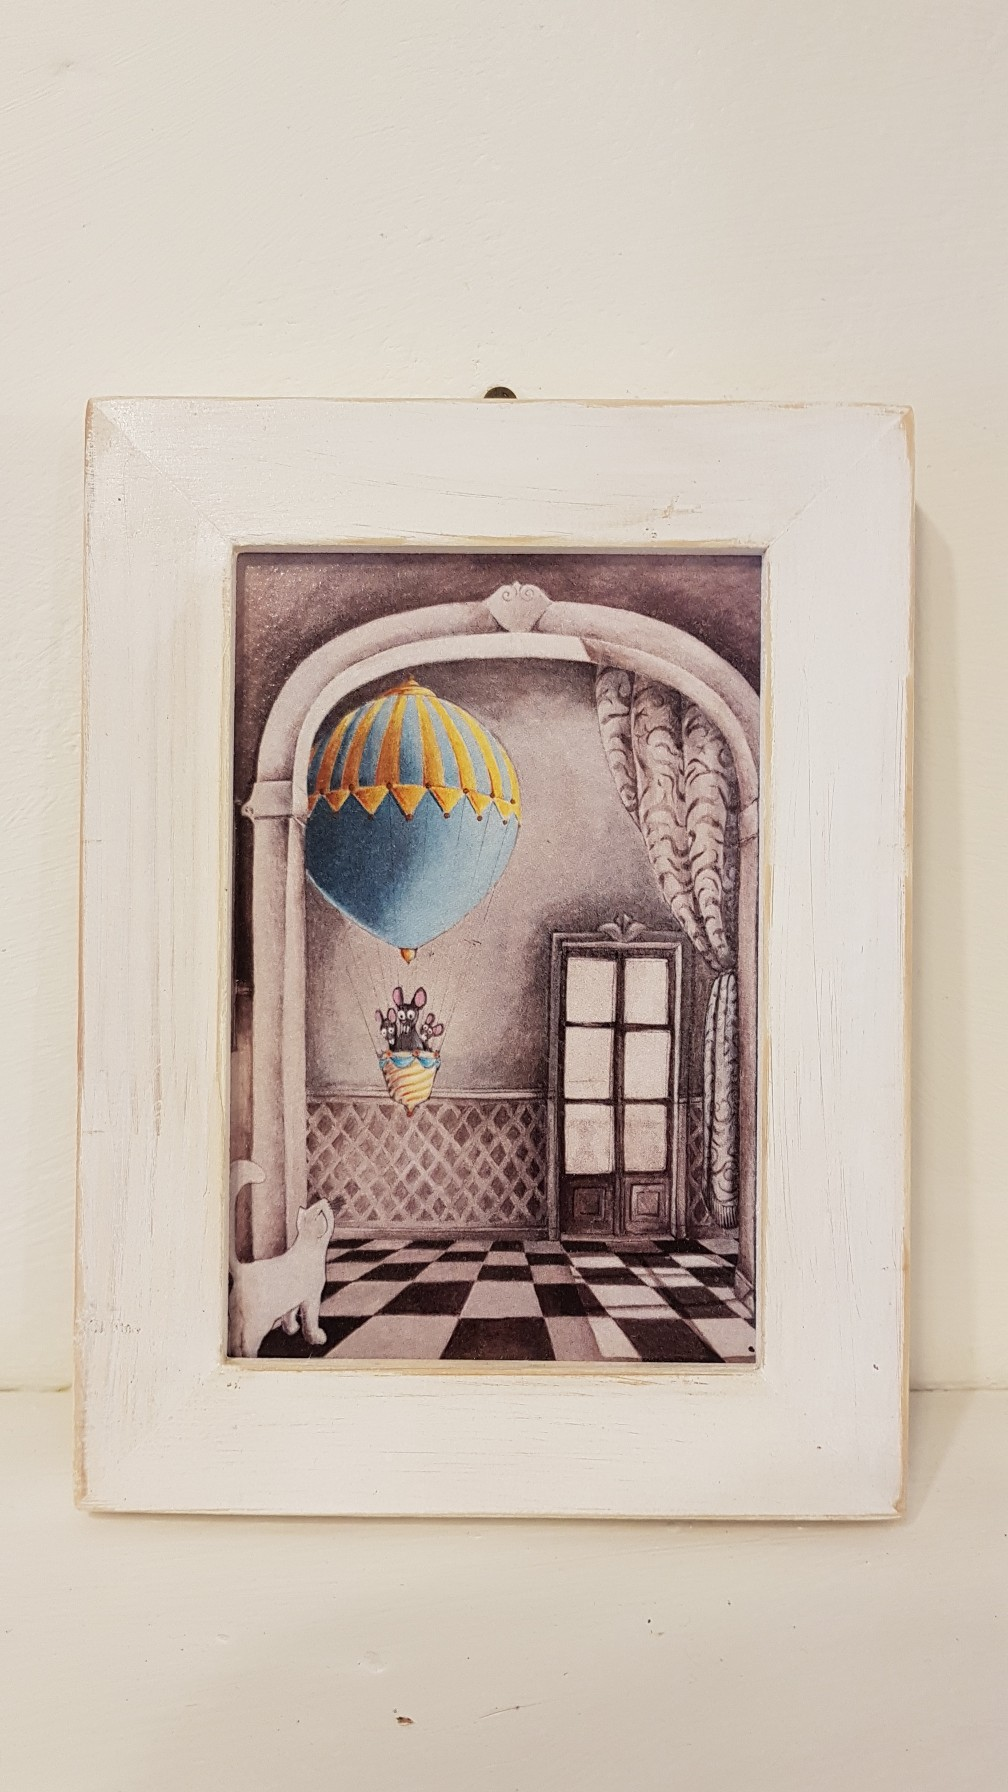 Topi in volo con cornice, Hot air balloon mice with frame